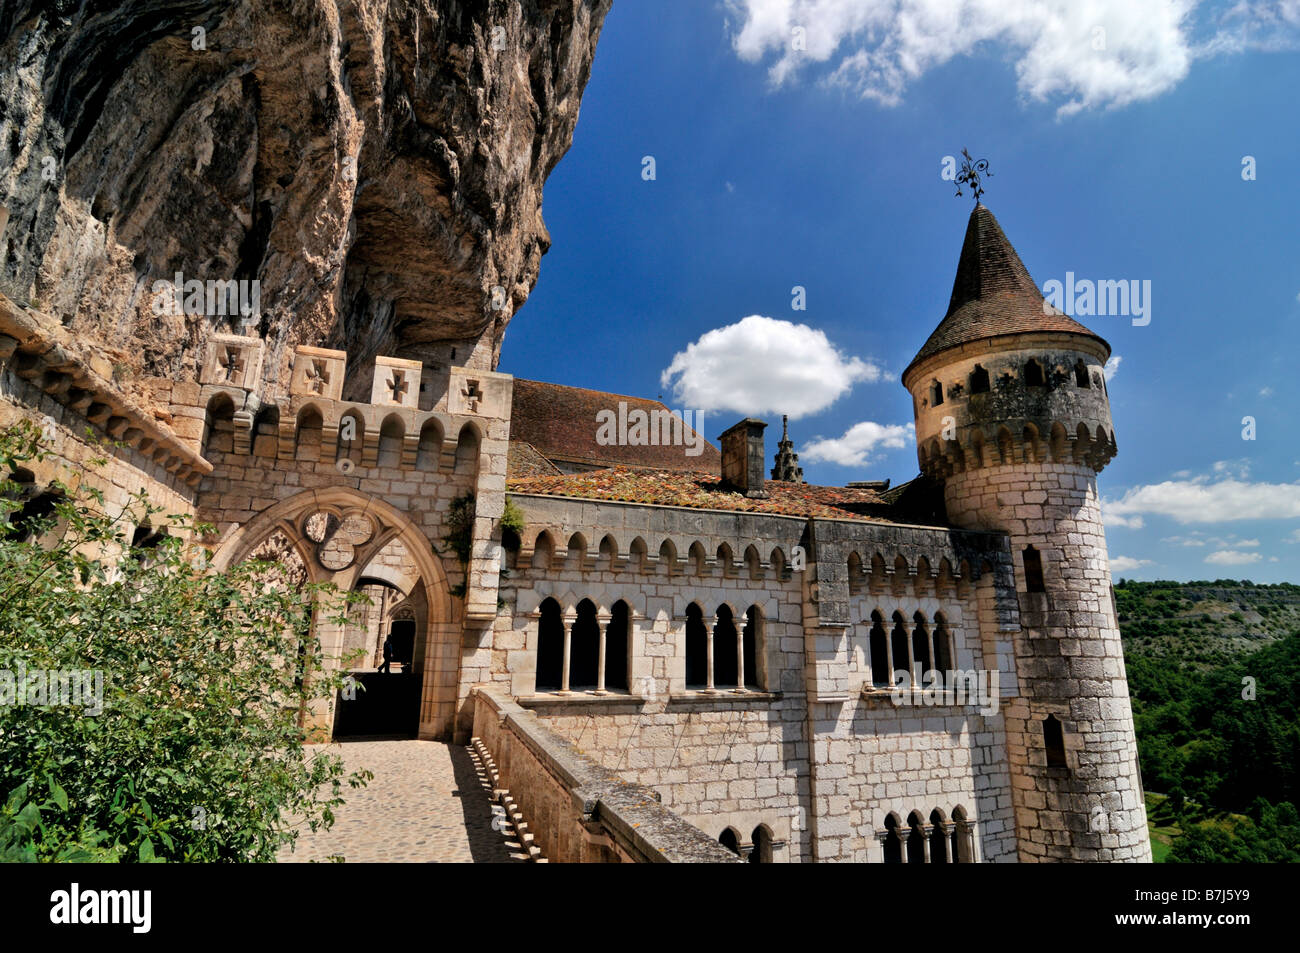 View to the Sanctuary of Rocamadour in France - Stock Image